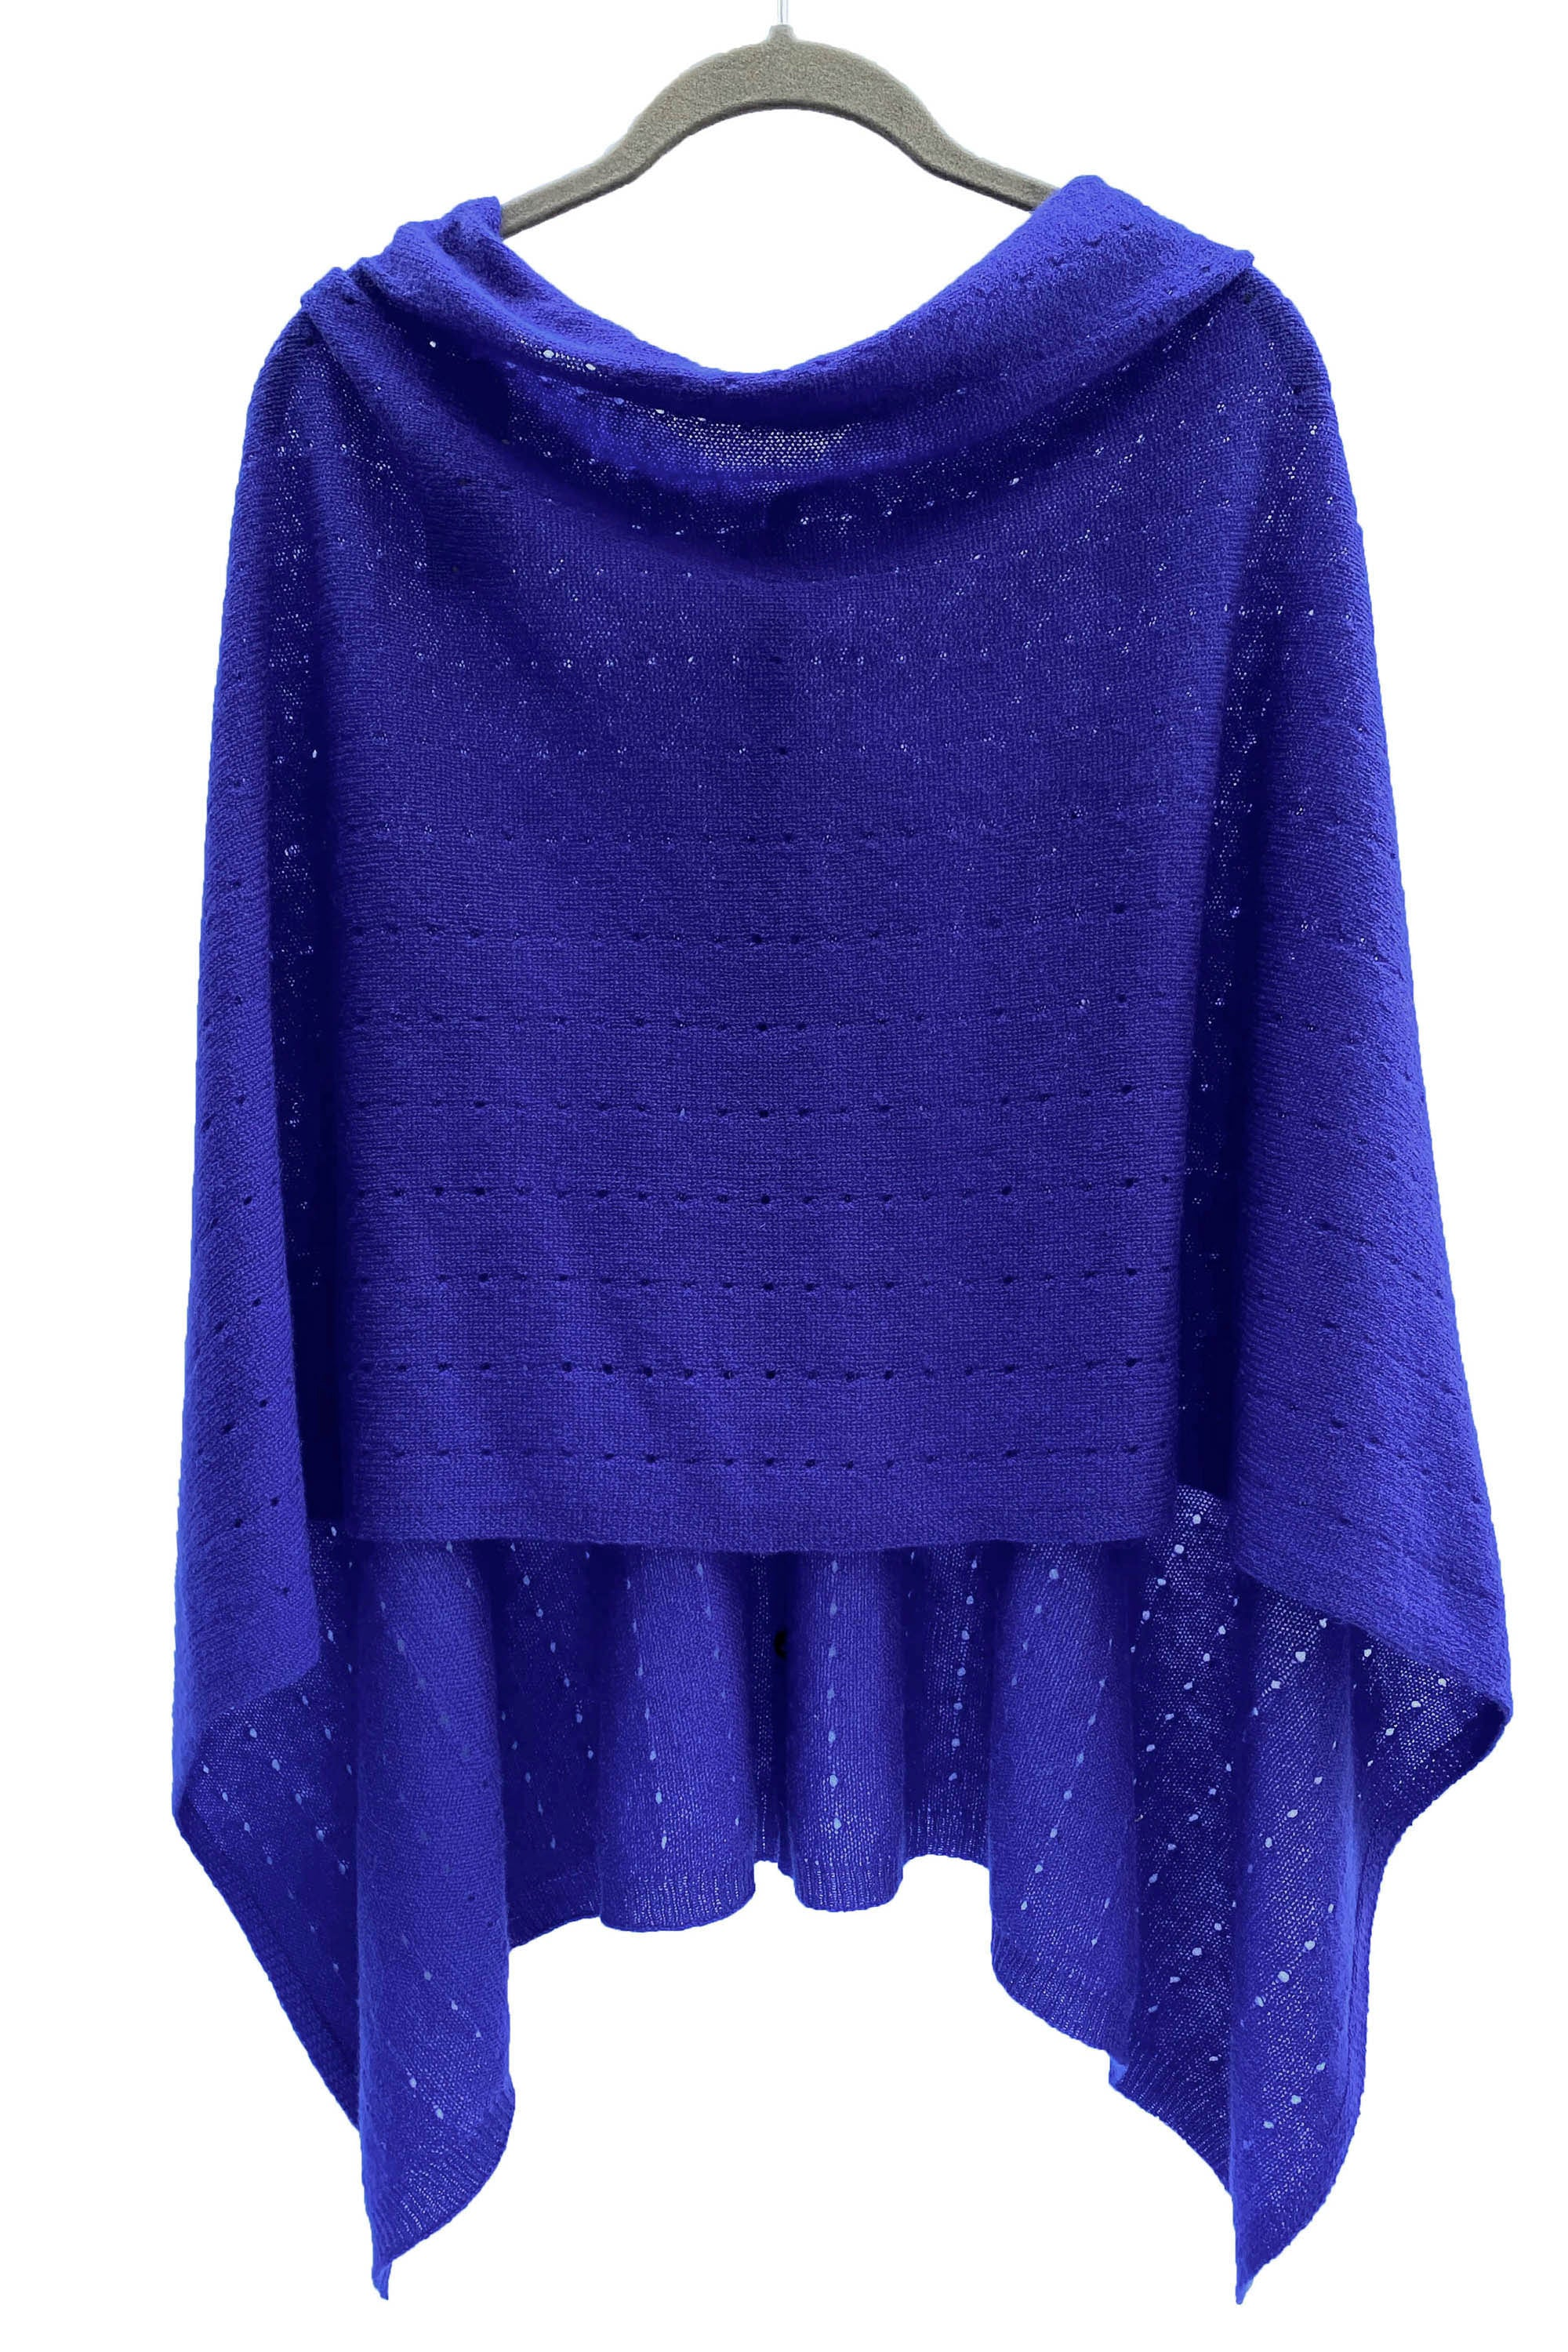 Indigo blue Cashmere Poncho UK, Women Wrap, Cape, Shawls, Scarf, shawl, cardigan, light weight, summer poncho, ladies small button poncho sweater sale | SEMON Cashmere